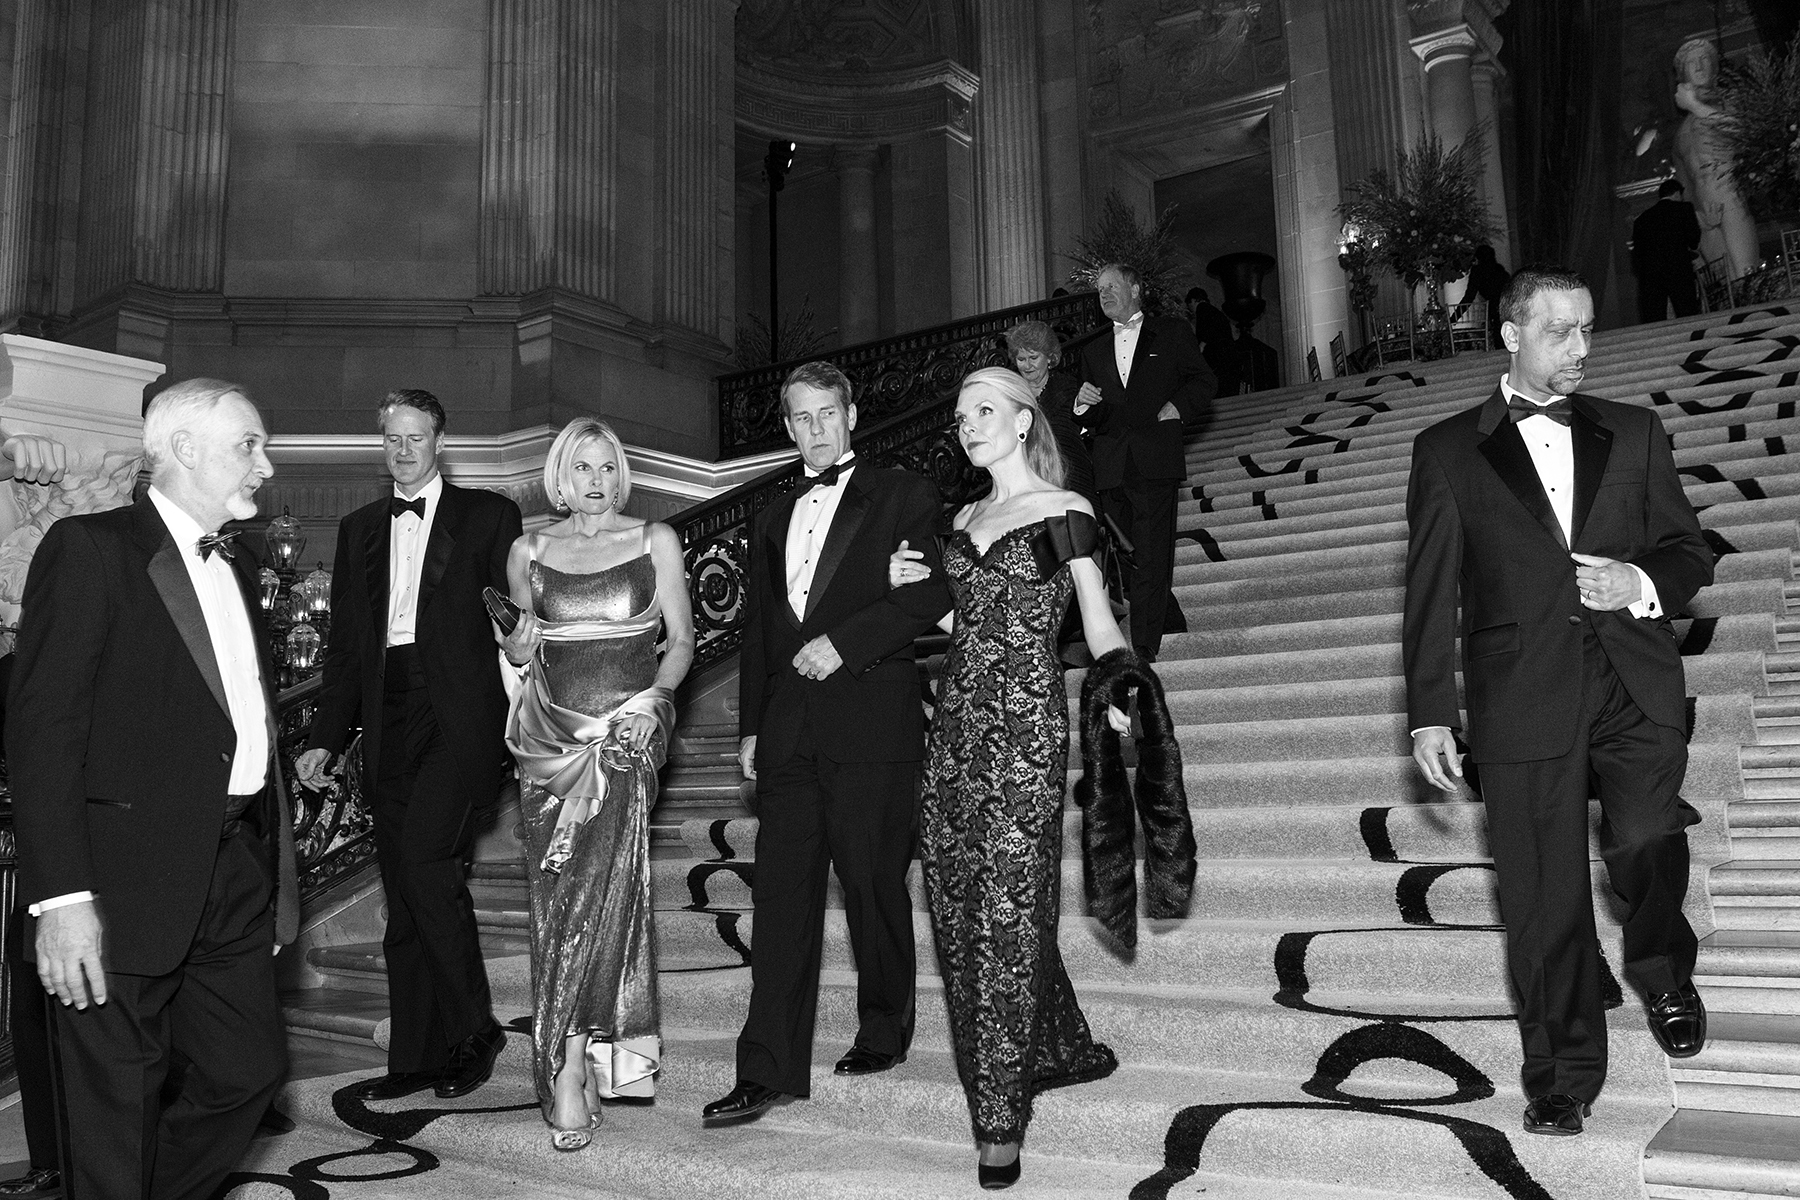 Guests of the San Francisco Ballet Opening Night Gala descend the stairs of City Hall while making their way from dinner to the performance in San Francisco, Calif., on Thursday, January 19, 2012. The galas are often all night affairs consisting of a cocktail hour, dinner, performance and an after party. These elaborate events give participants a chance to dress up, mingle with one another and generally see and be seen.       This photograph is of a candid moment and was not directed in any way.